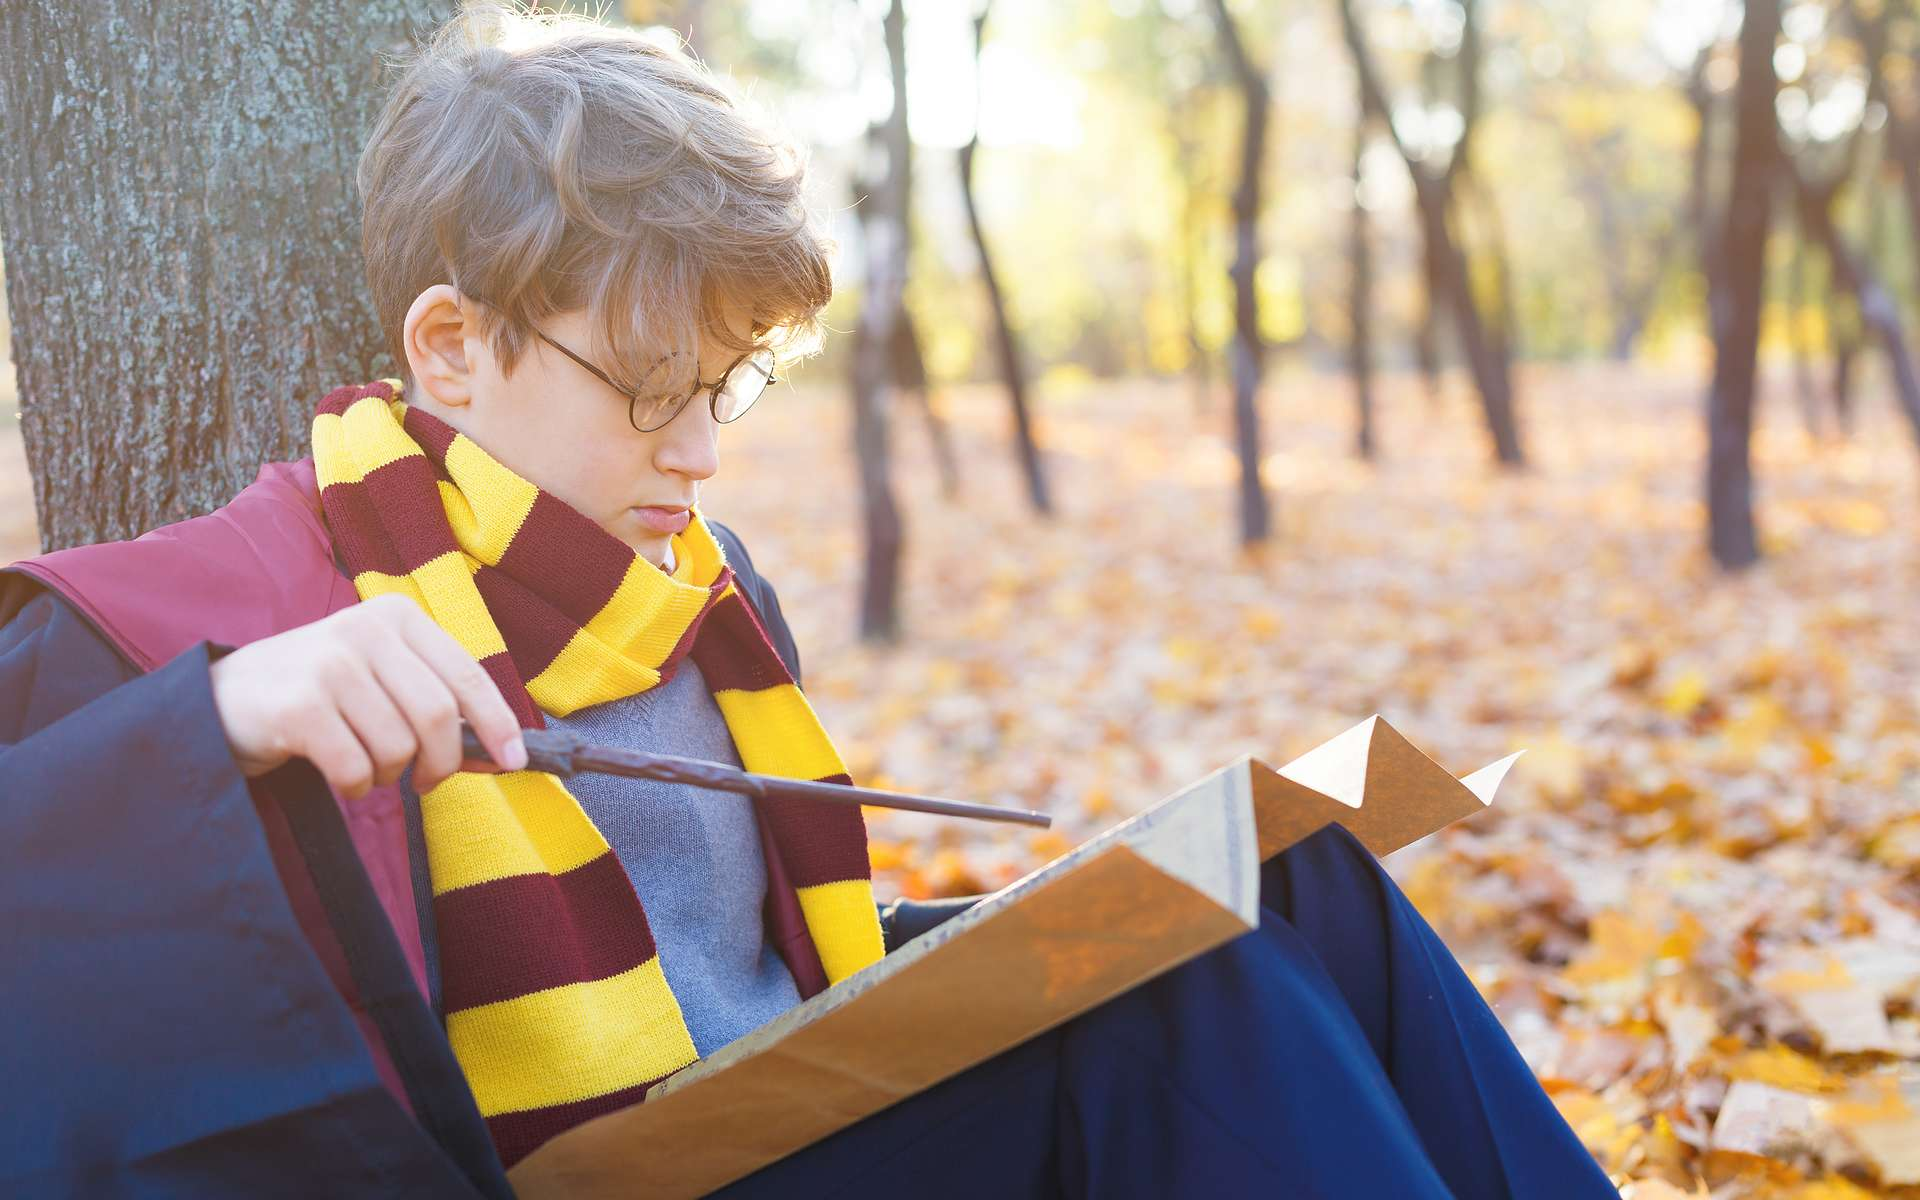 Harry Potter nous sert à vulgariser des notions d'épistémologie. © Natali, Adobe Stock